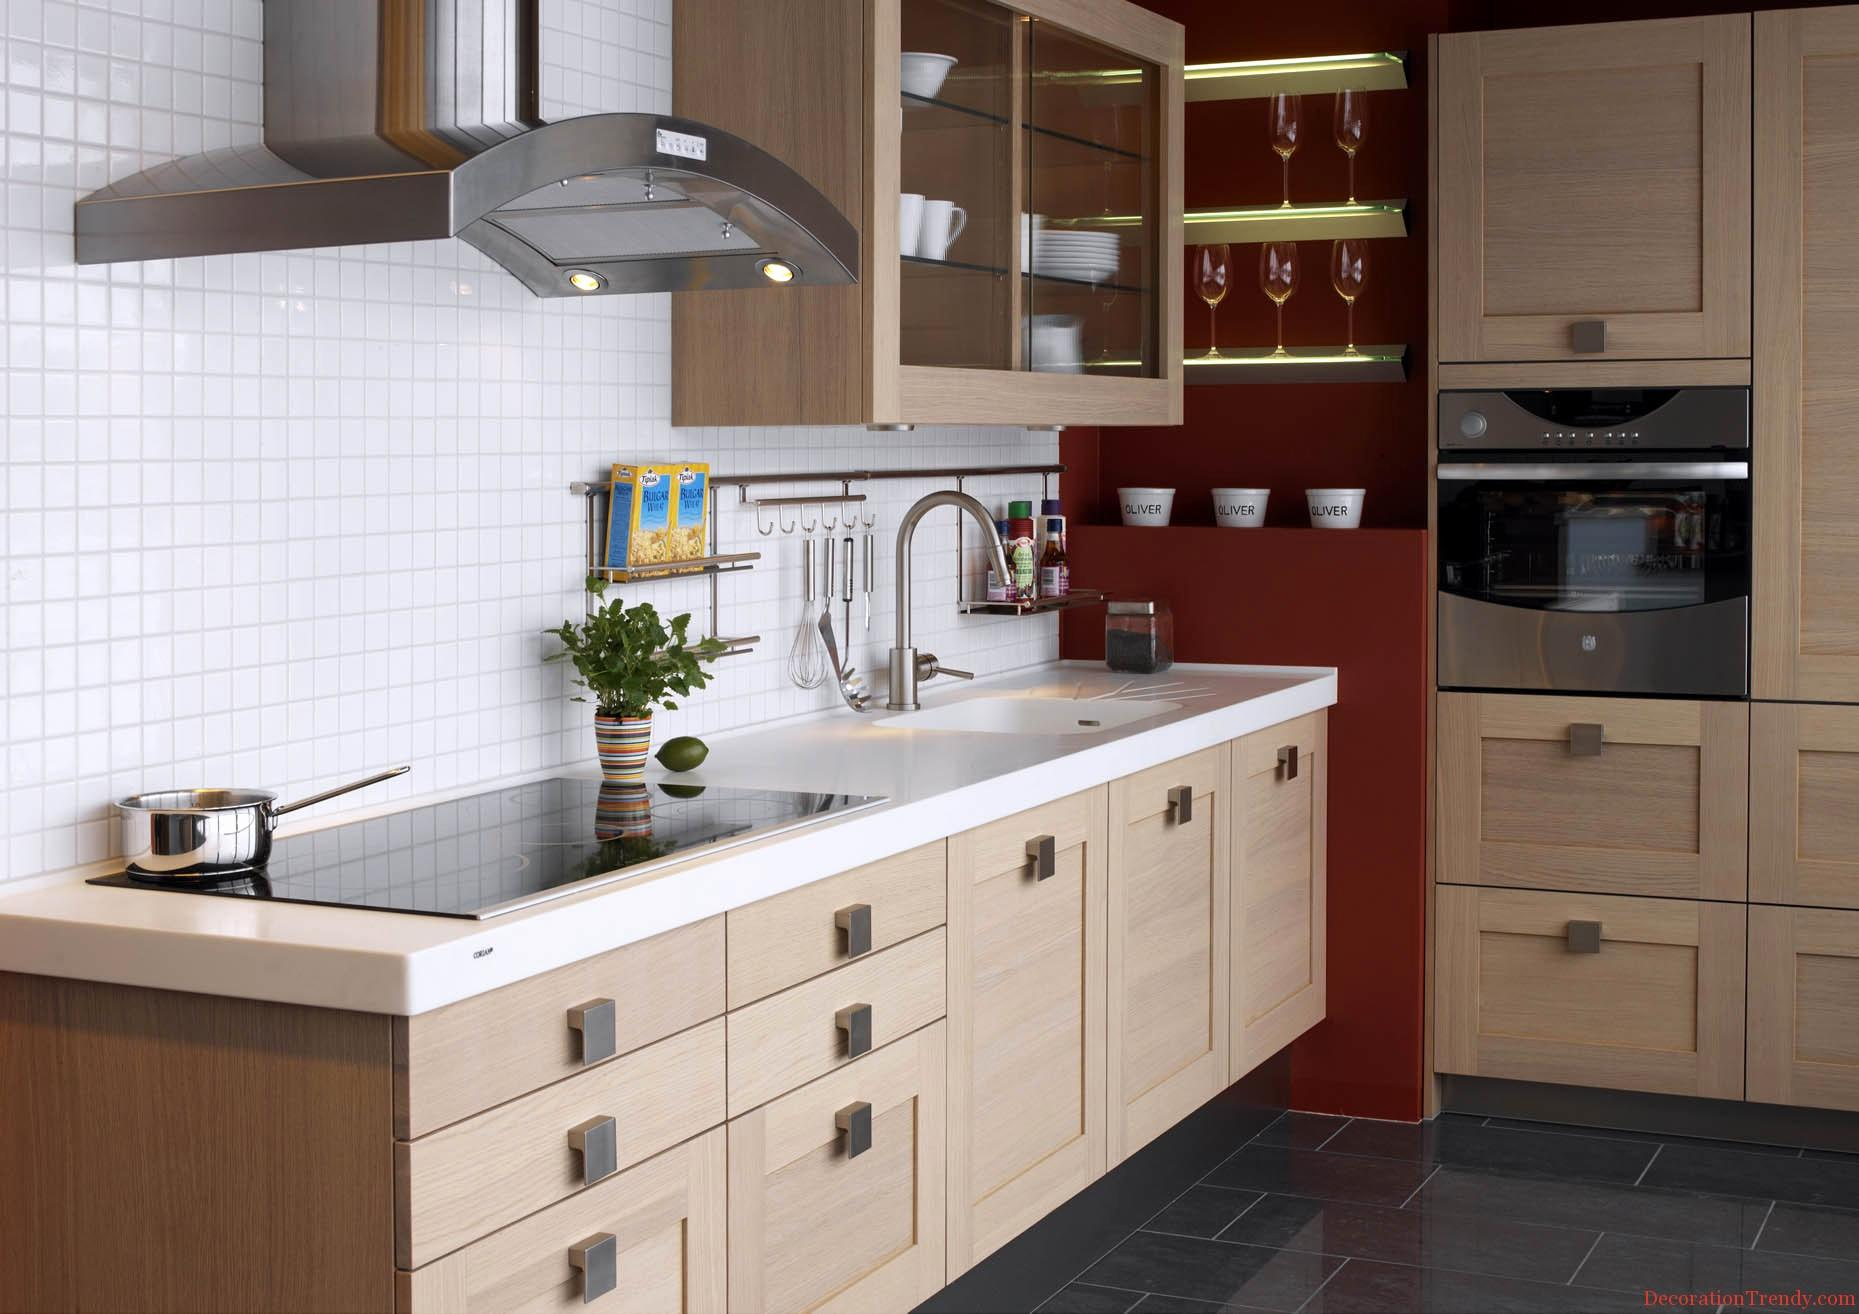 Image of: Simple Kitchen Cabinets Design Ideas